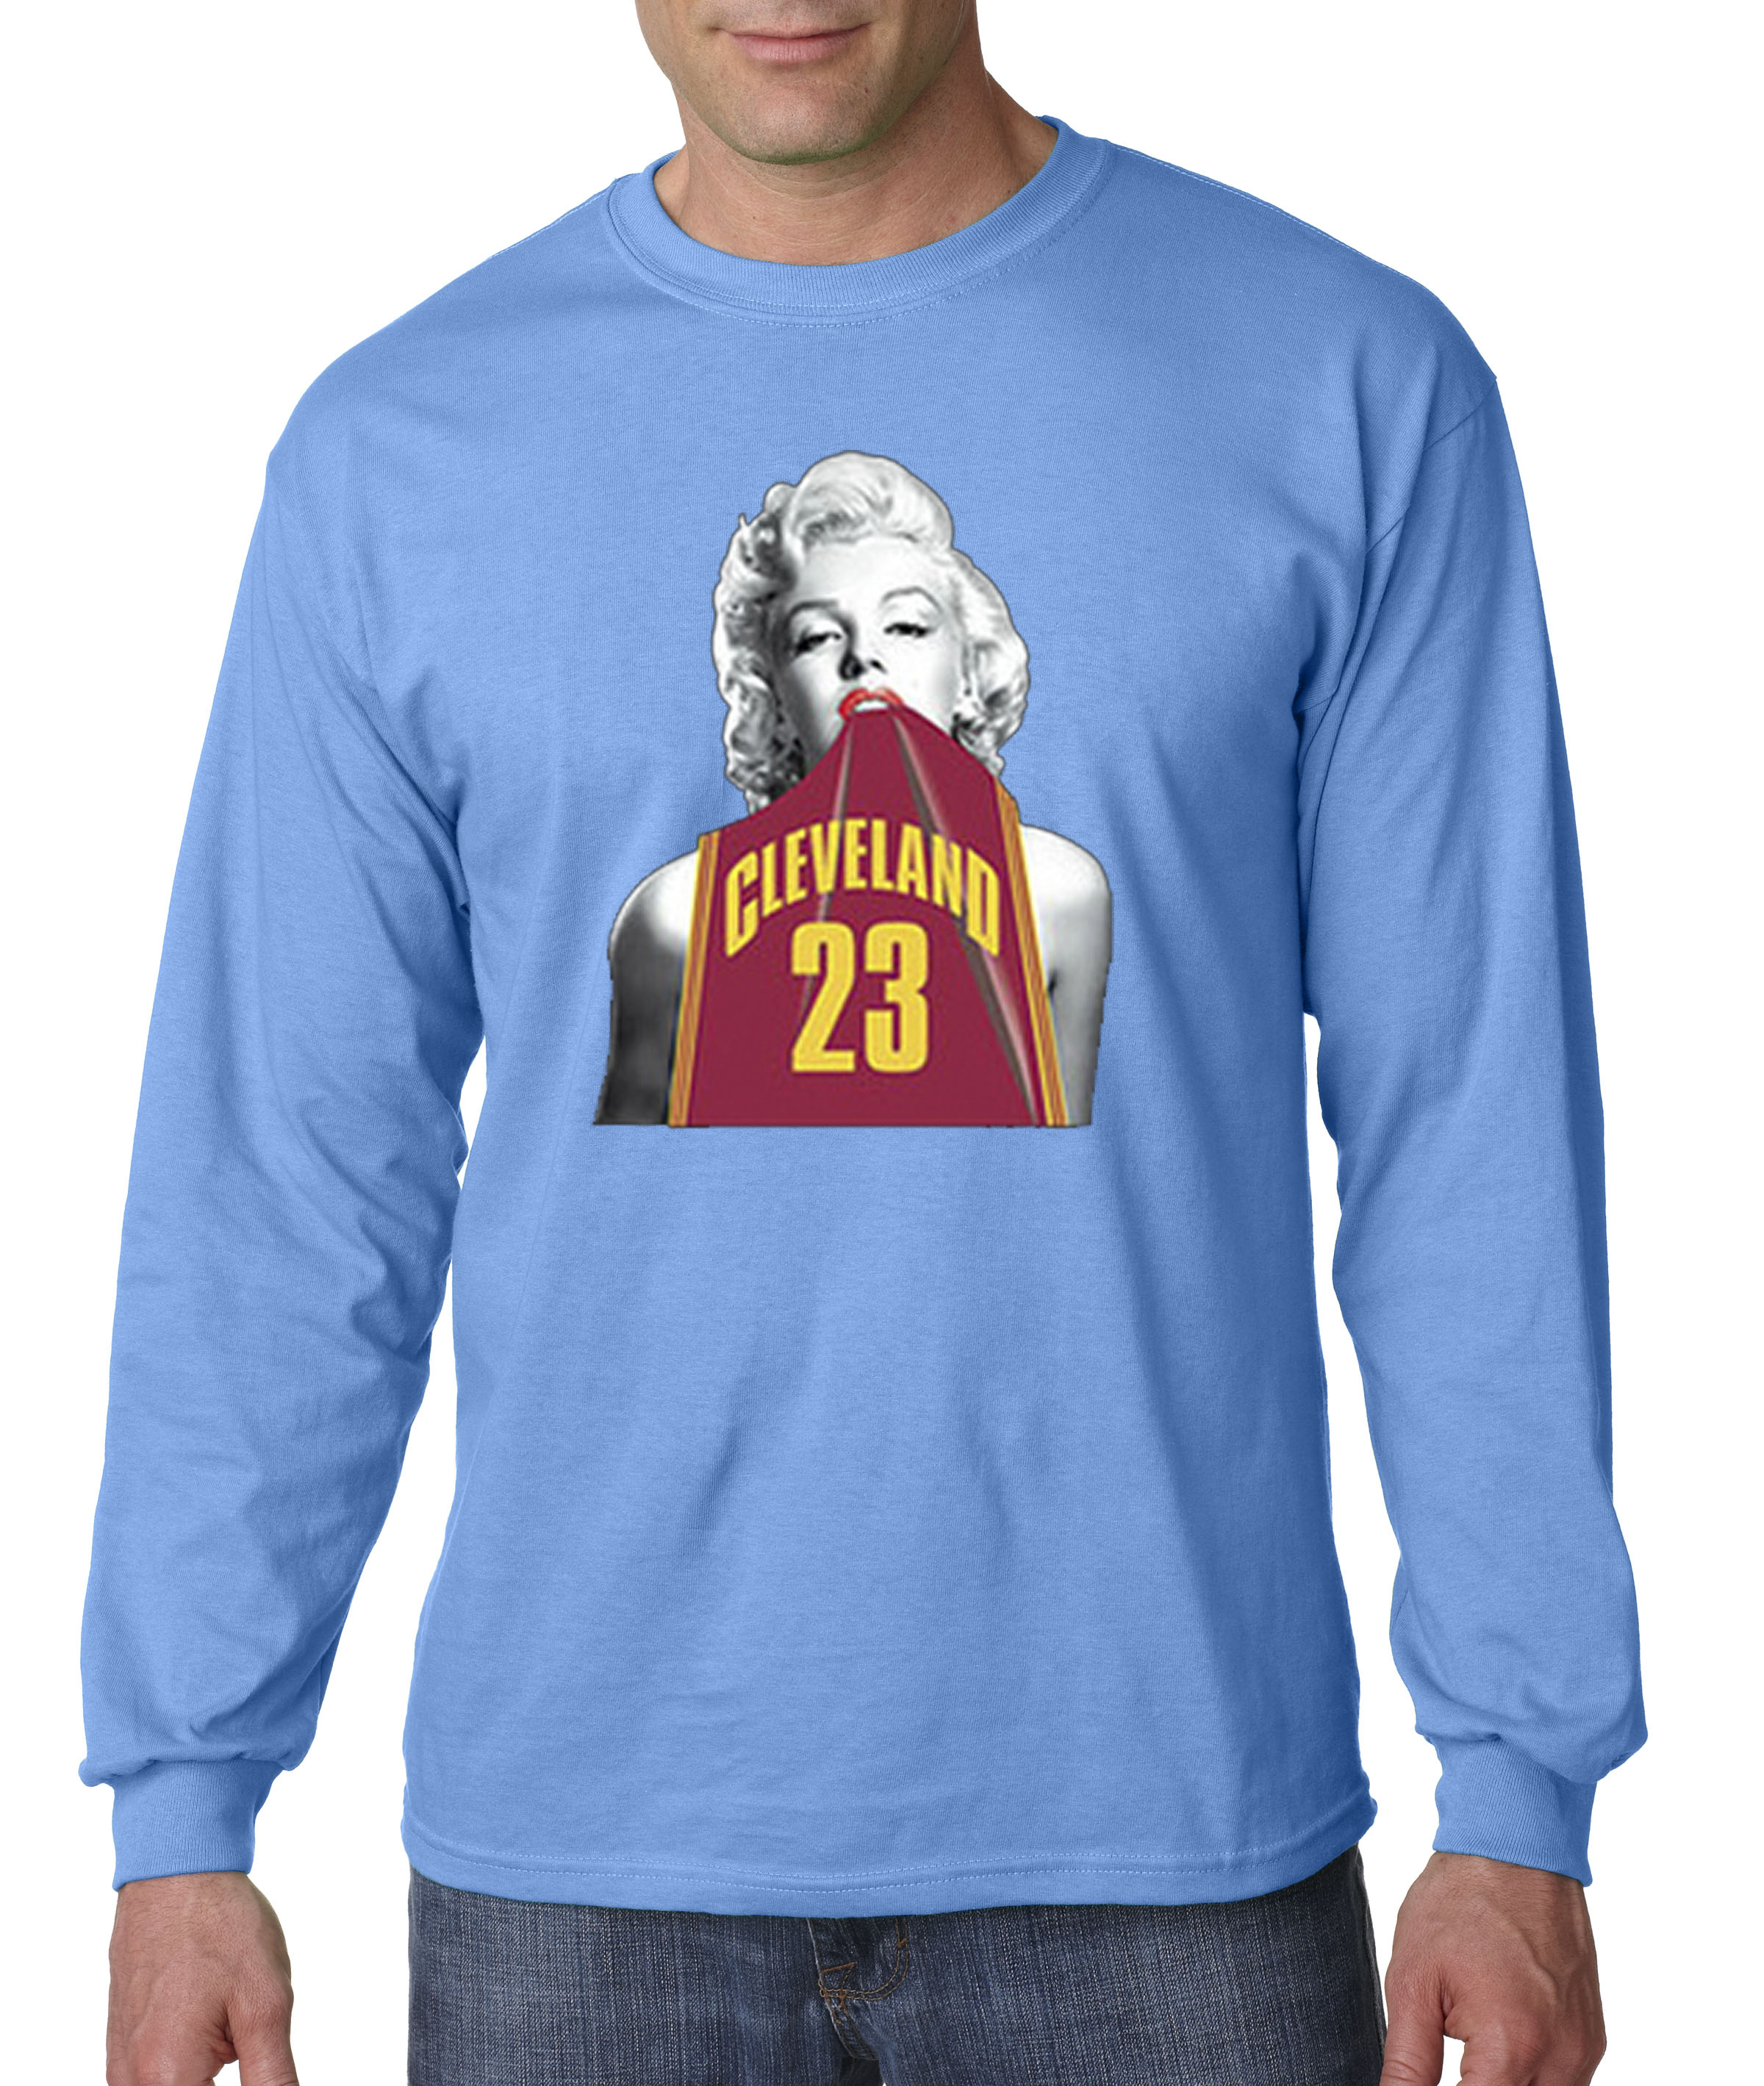 284b87c2 504 - Unisex Long-Sleeve T-Shirt Lebron James Basketball Series